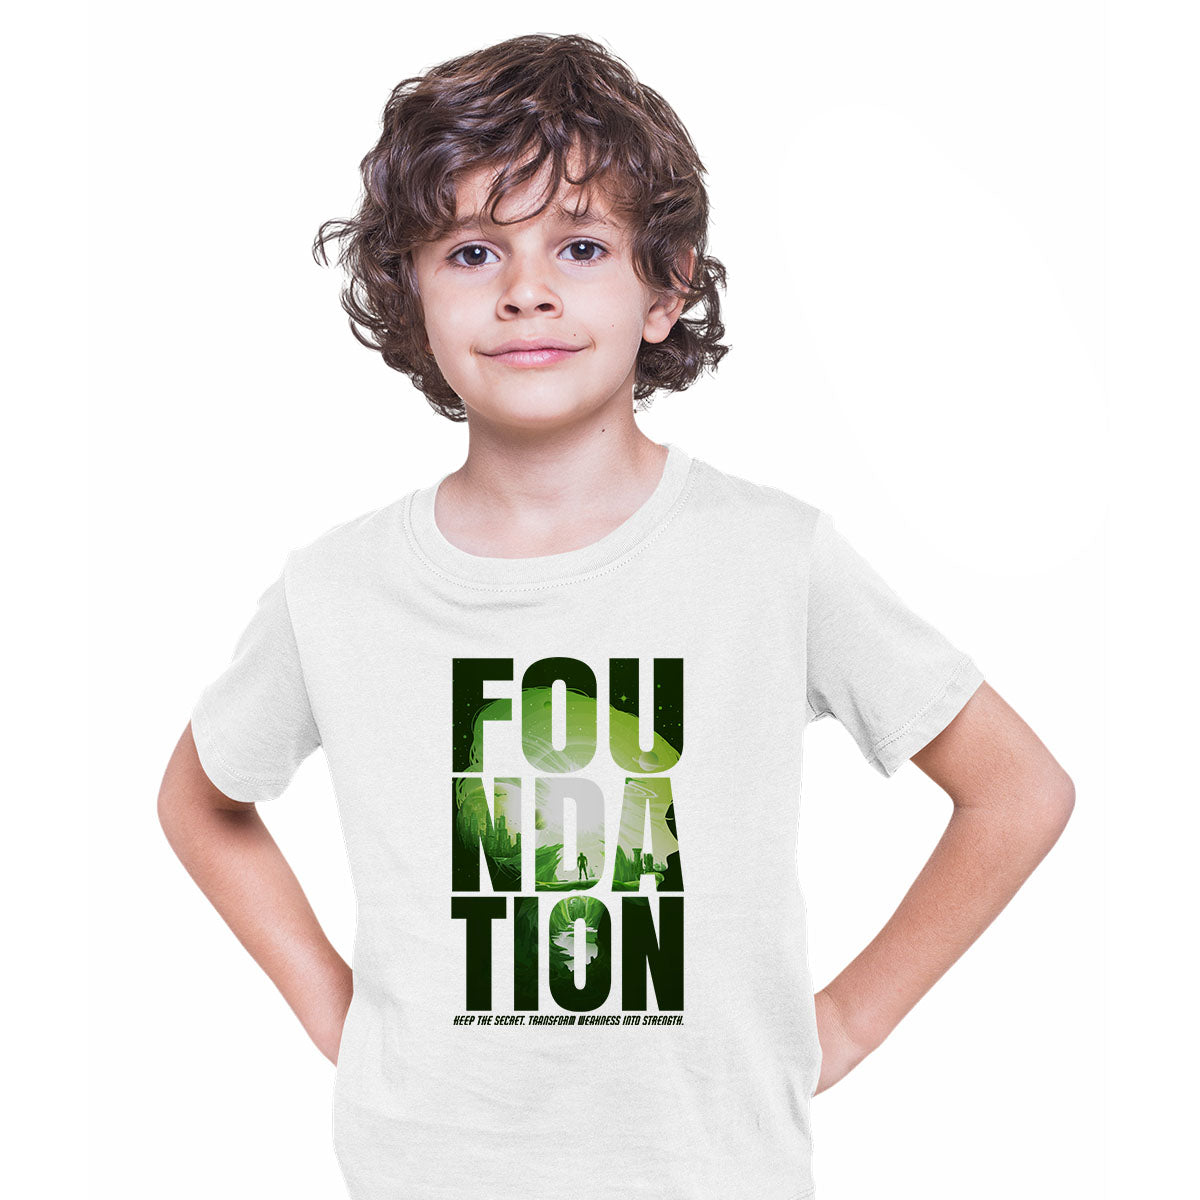 Isaac Asimov T-Shirt Foundation Empire Robot Android Science Fiction White T-shirt for Kids